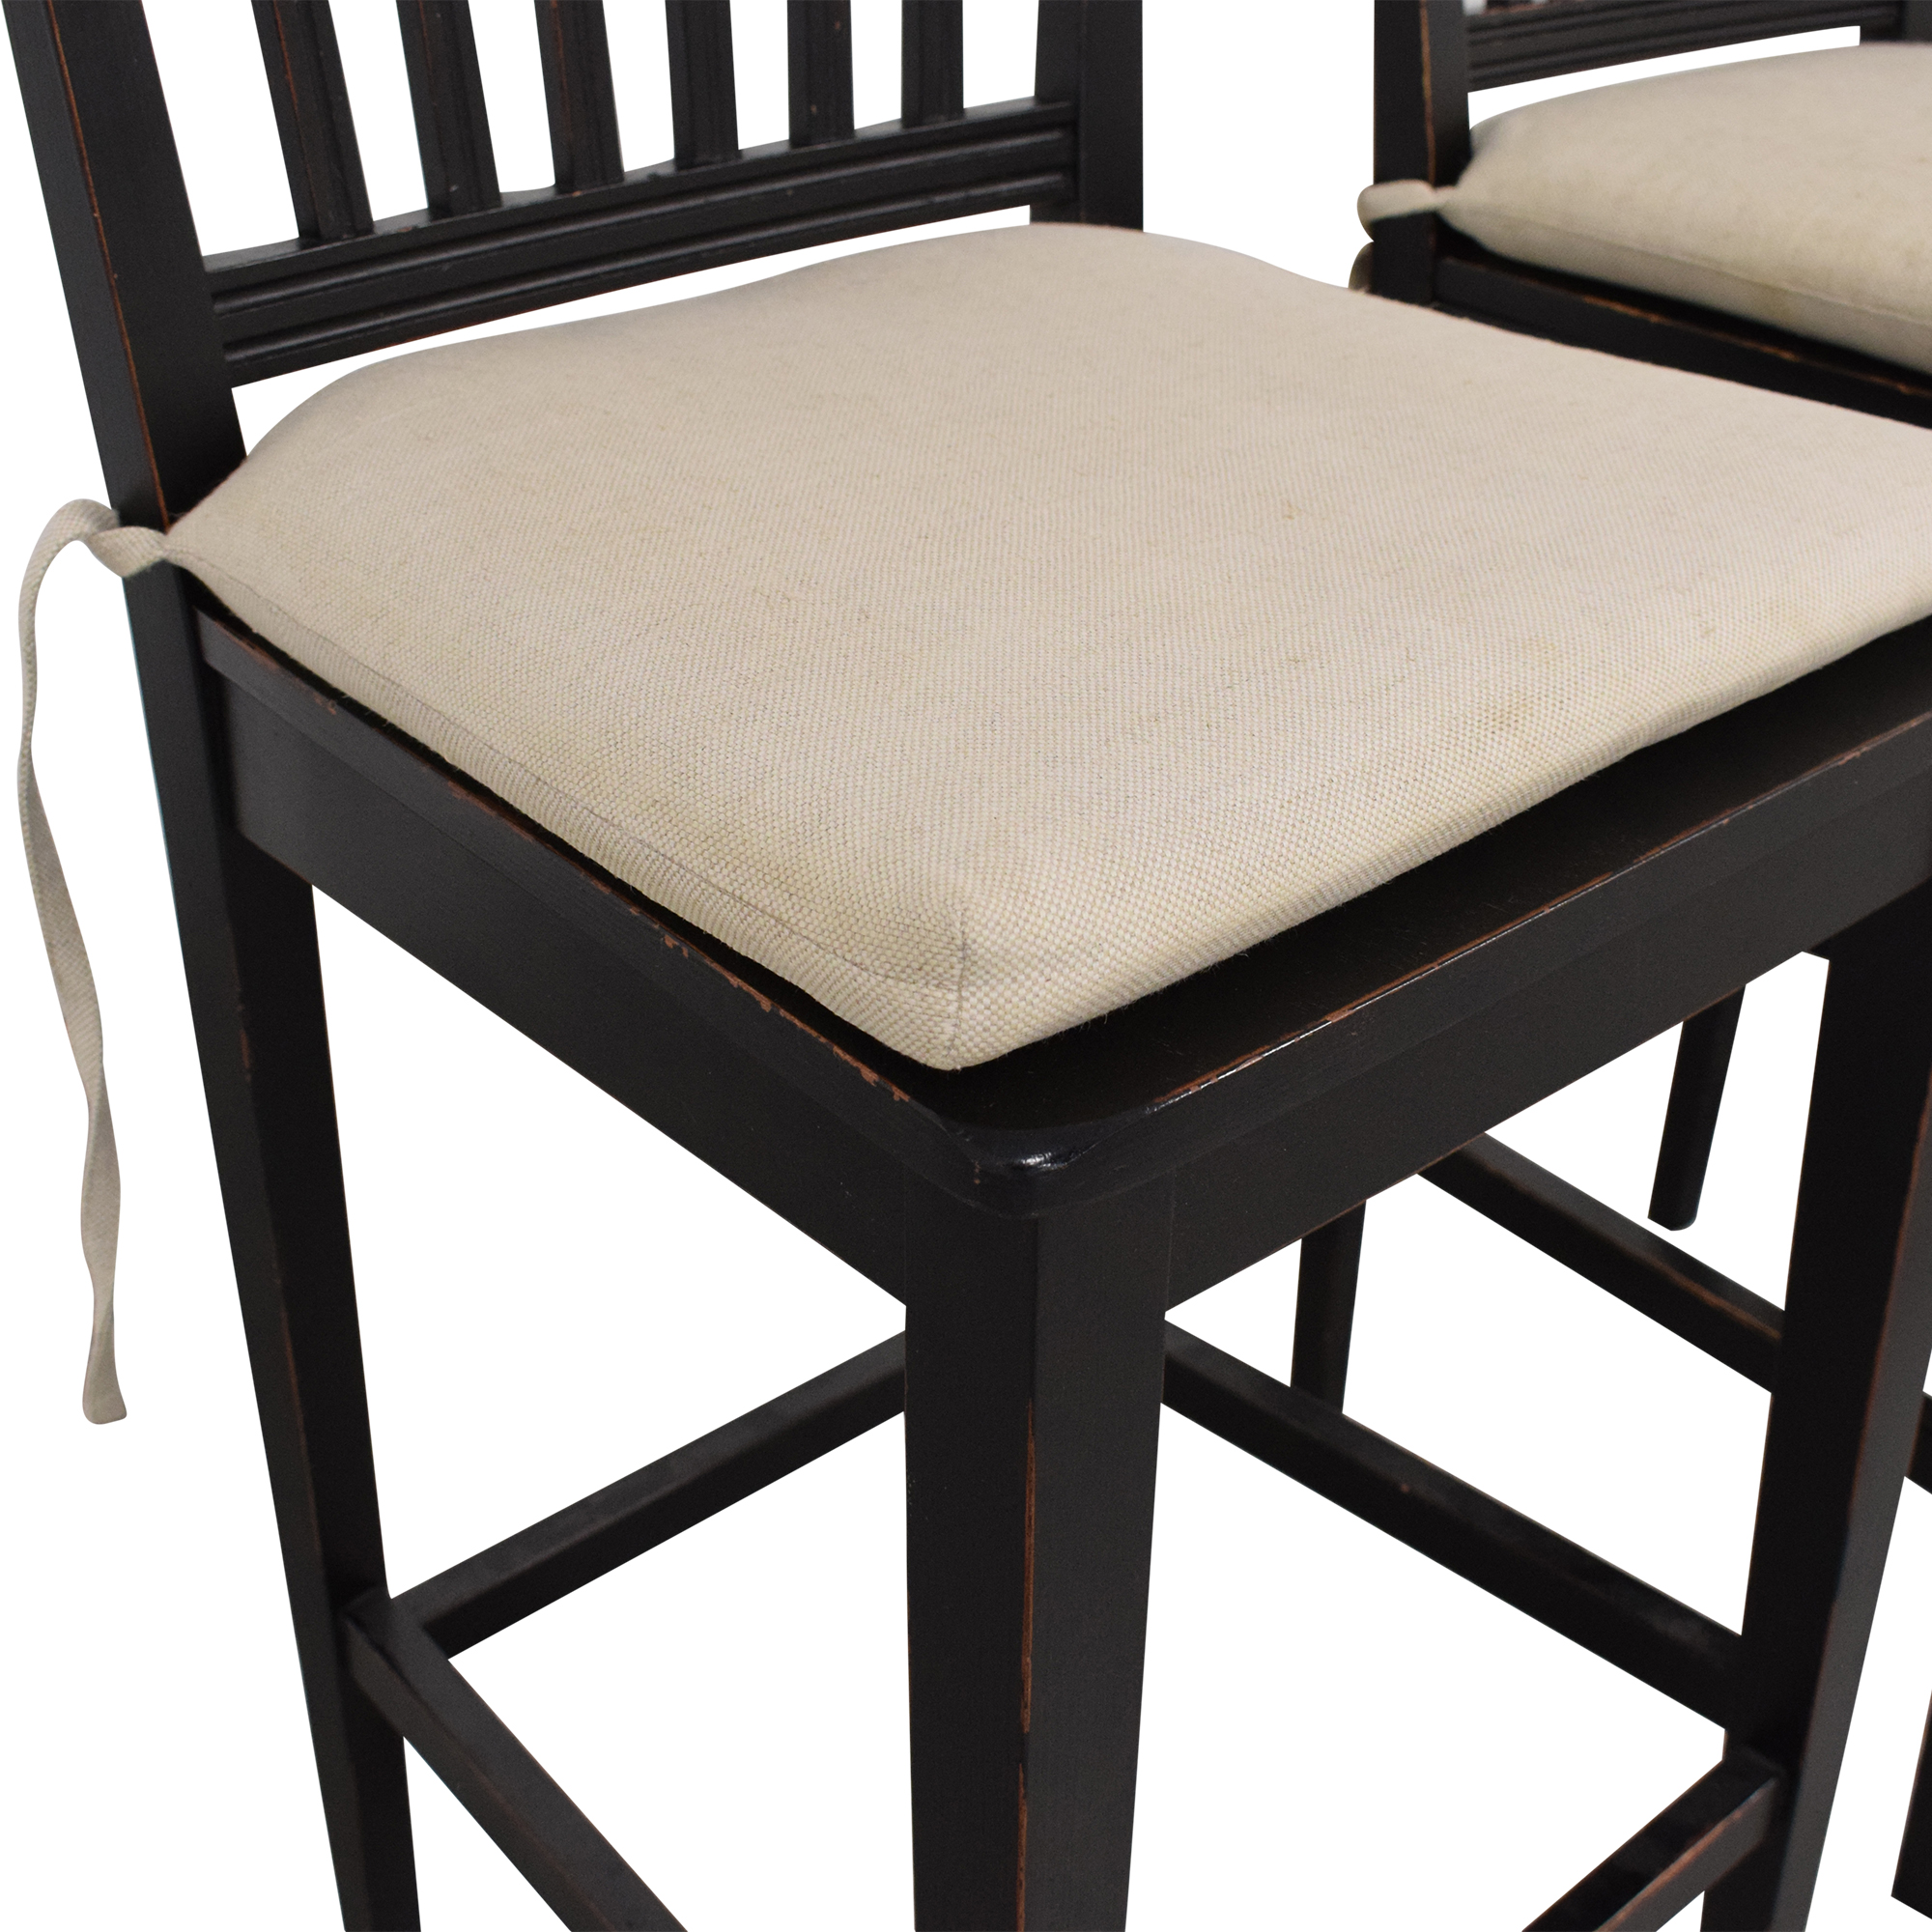 Crate & Barrel Crate & Barrel Buying & Design Counter Height Chairs coupon